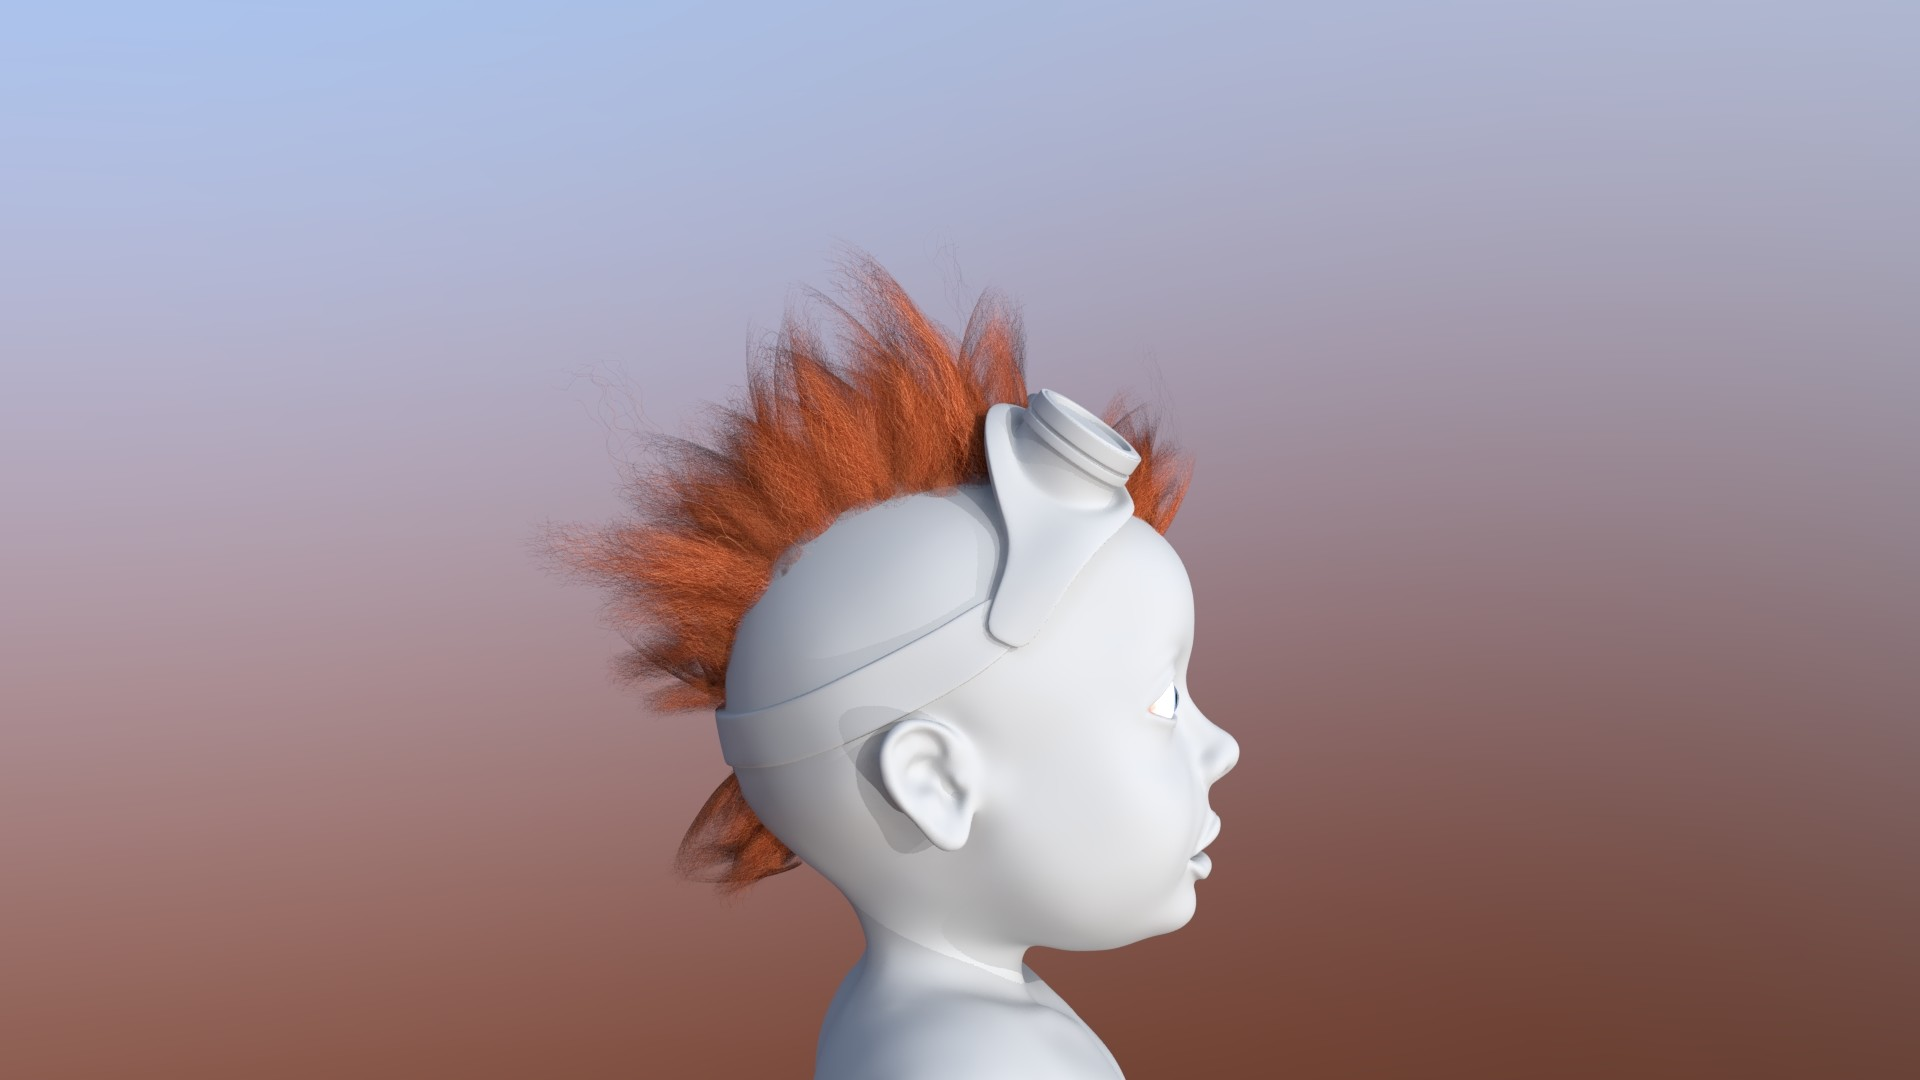 Hair was done manually by placing different polycards.